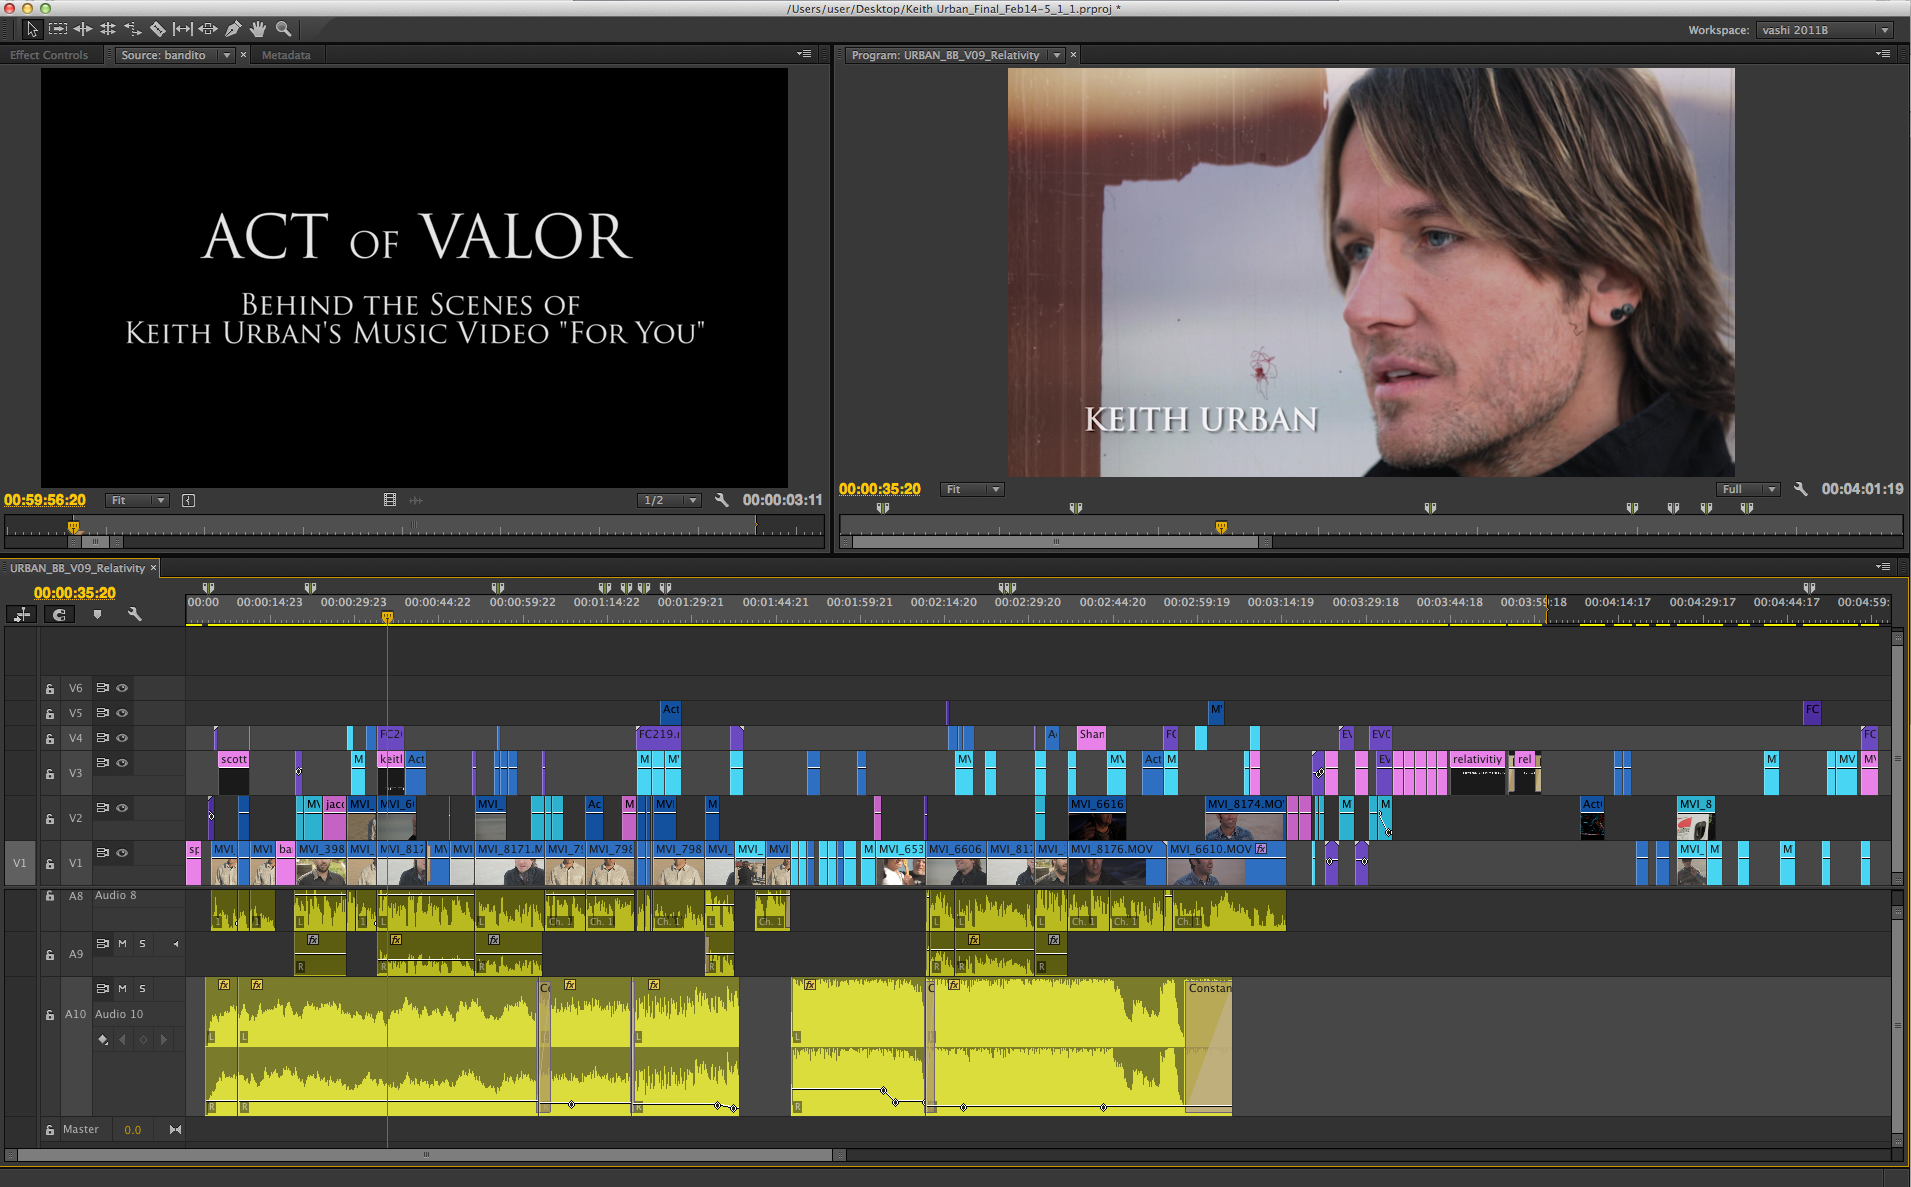 """Keith Urban """"For You"""" music video behind the scenes. http://vashivisuals.com/keith-urban-for-you-5-tips-for-music-video-behind-the-scenes/  #filmmaking #indiefilm #postproduction #premierepro #adobe"""